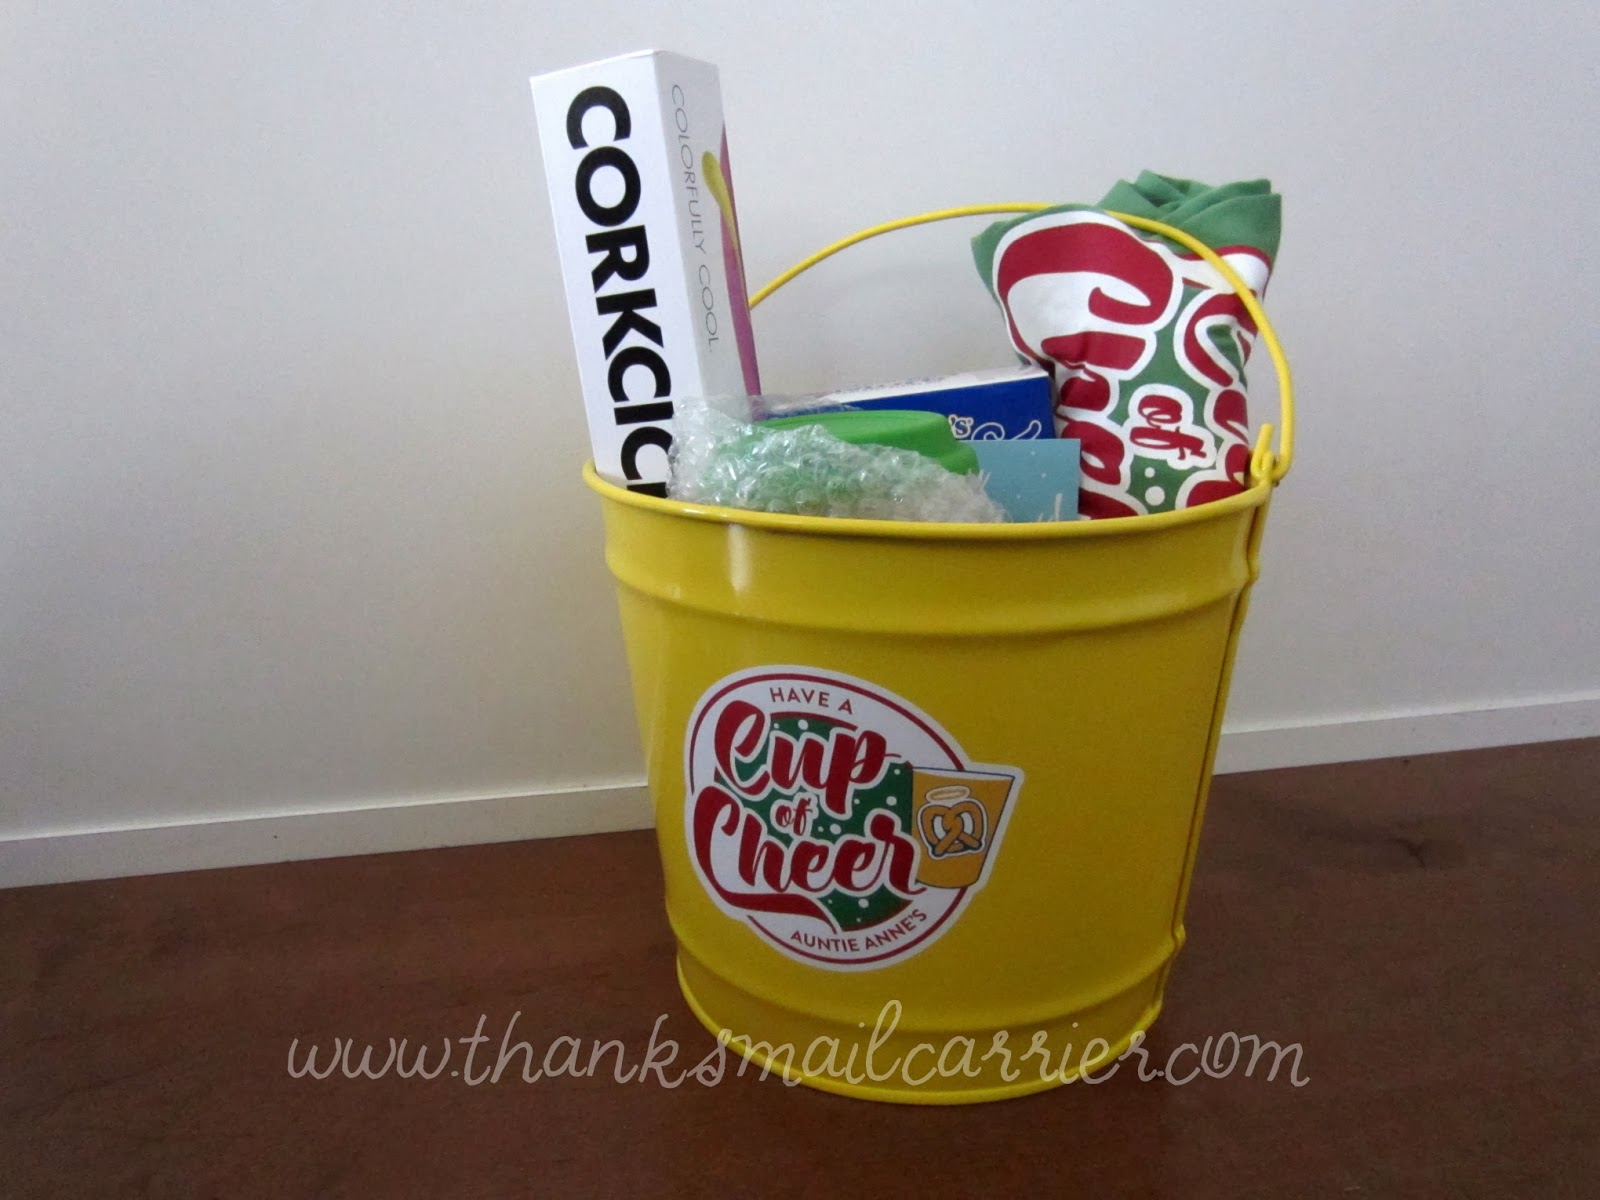 Auntie Anne's cup of cheer bucket